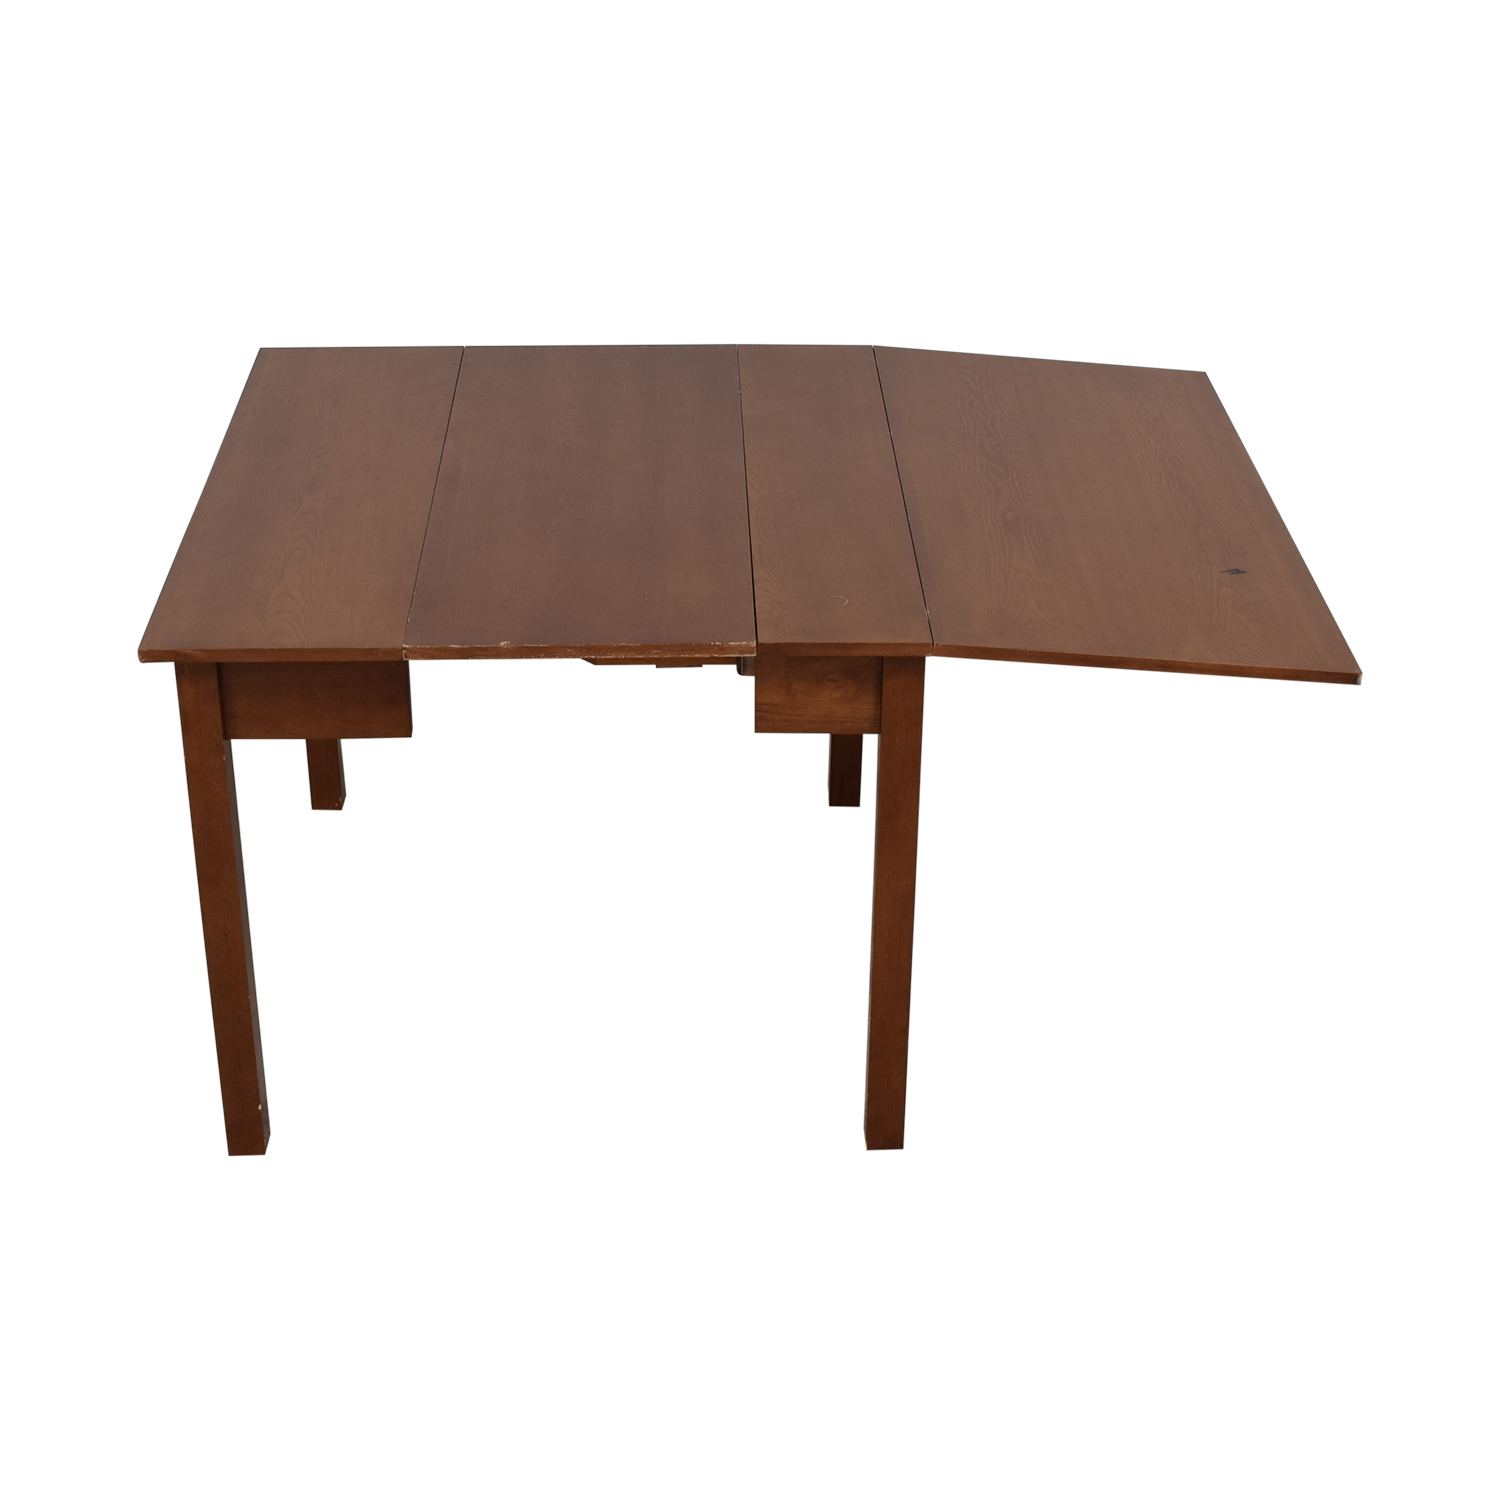 buy  Extendable Table with Drawers online